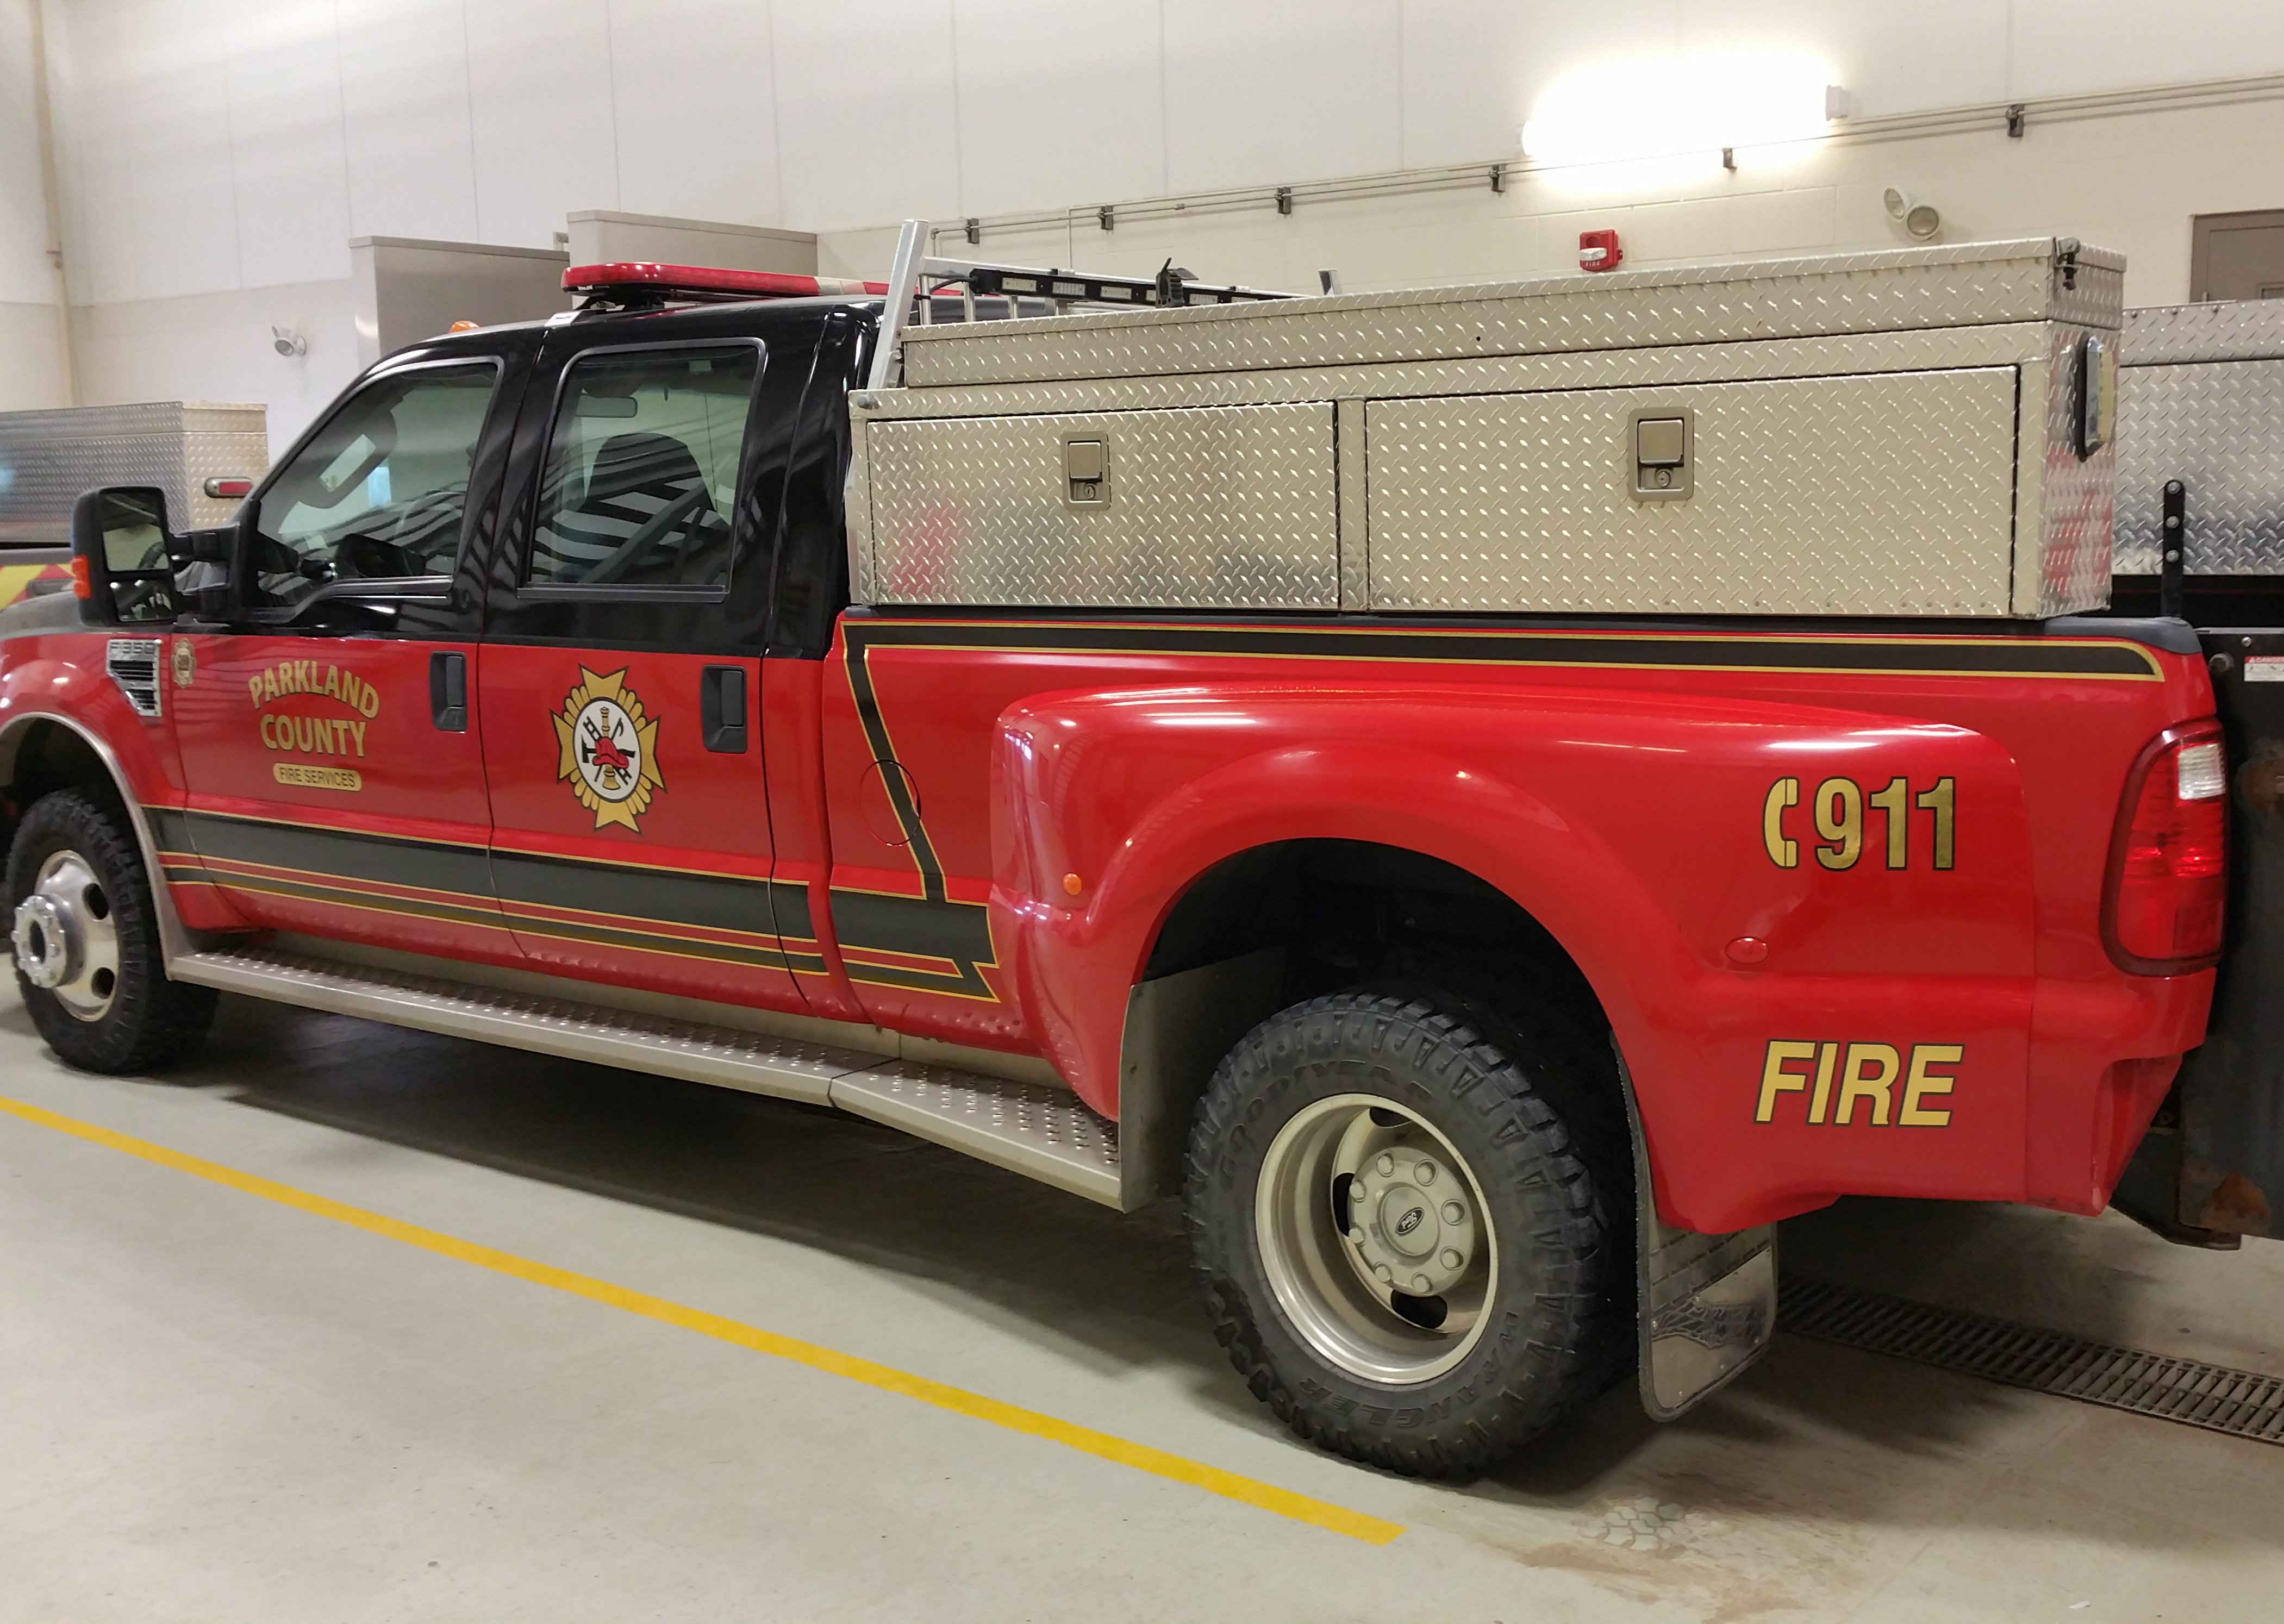 Parkland County fire department reflective decals.